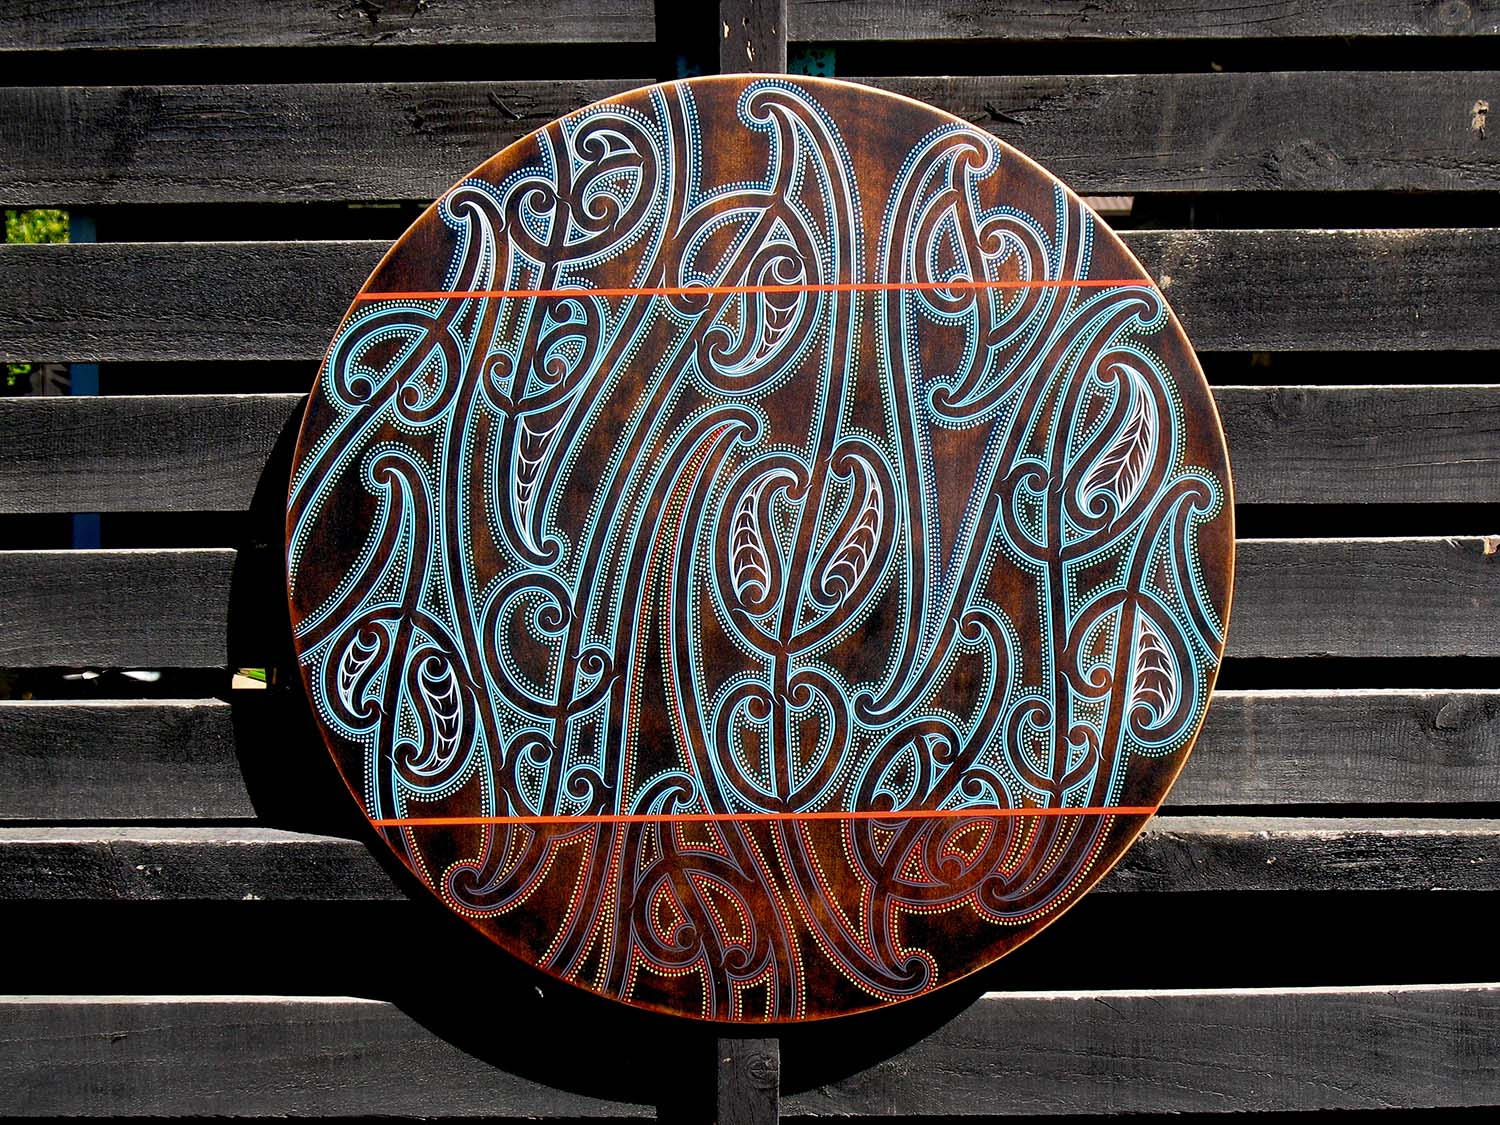 Earth-Sea-Sky-round-wooden-artwork-by-Tony-Harrington